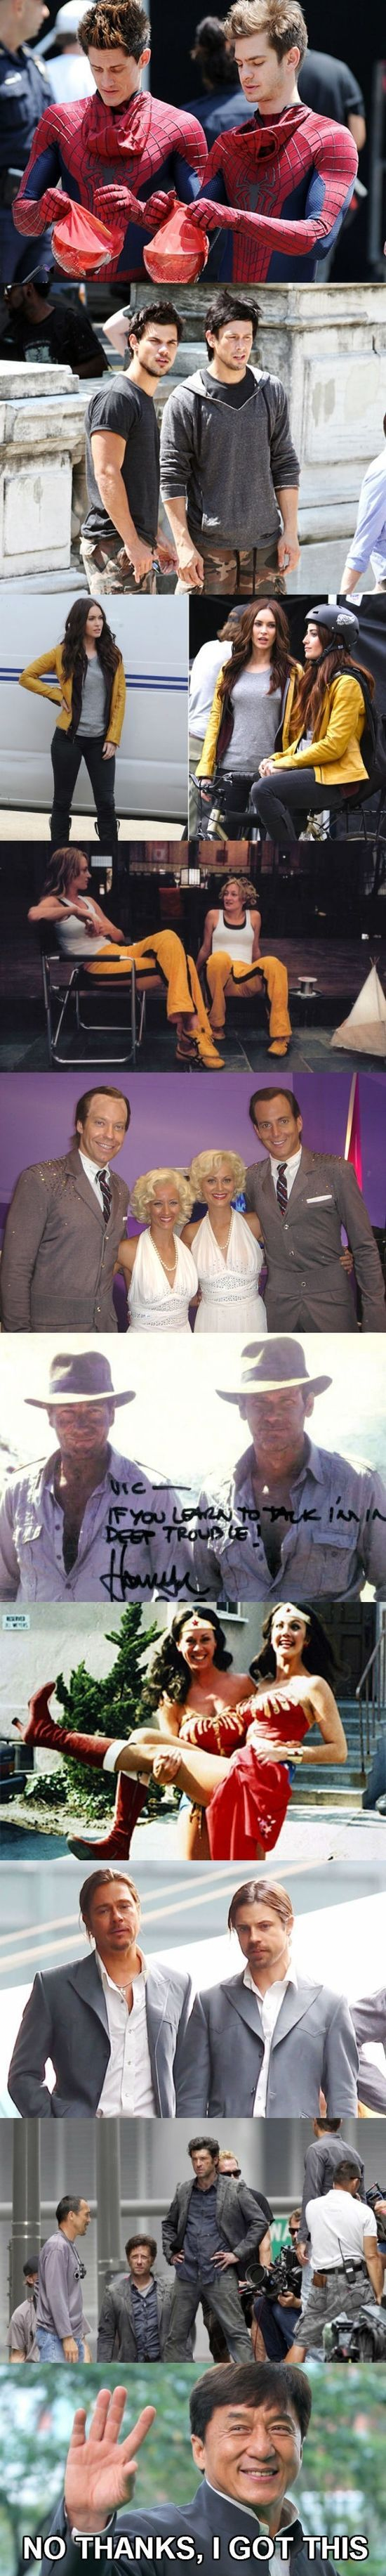 Celebs With Their Stunt Doubles #lol #haha #funny